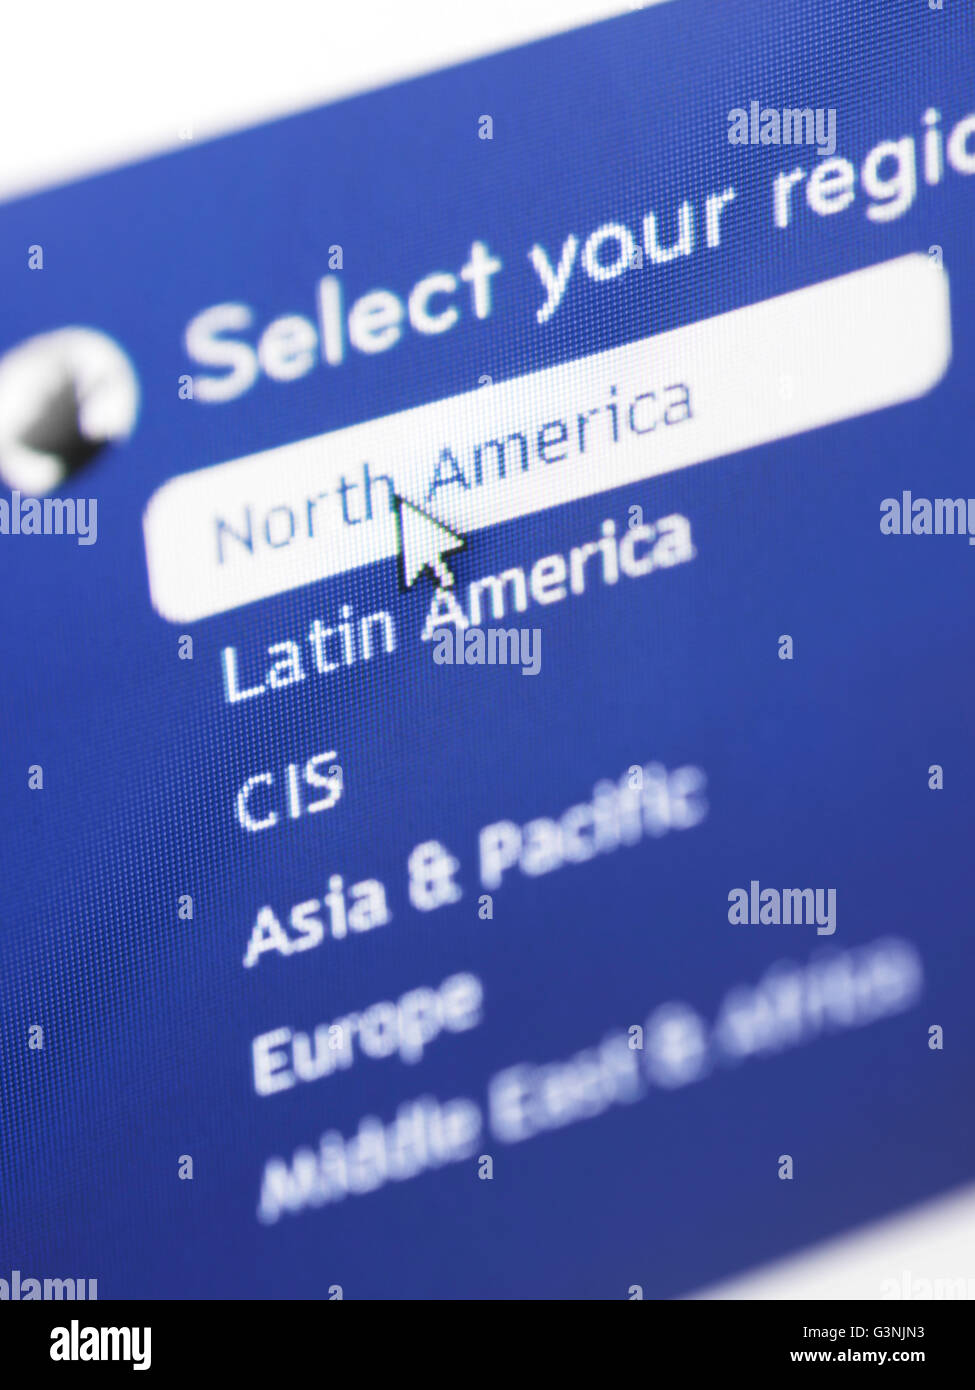 Selecting region from a web site localization menu, selecting North American region - Stock Image